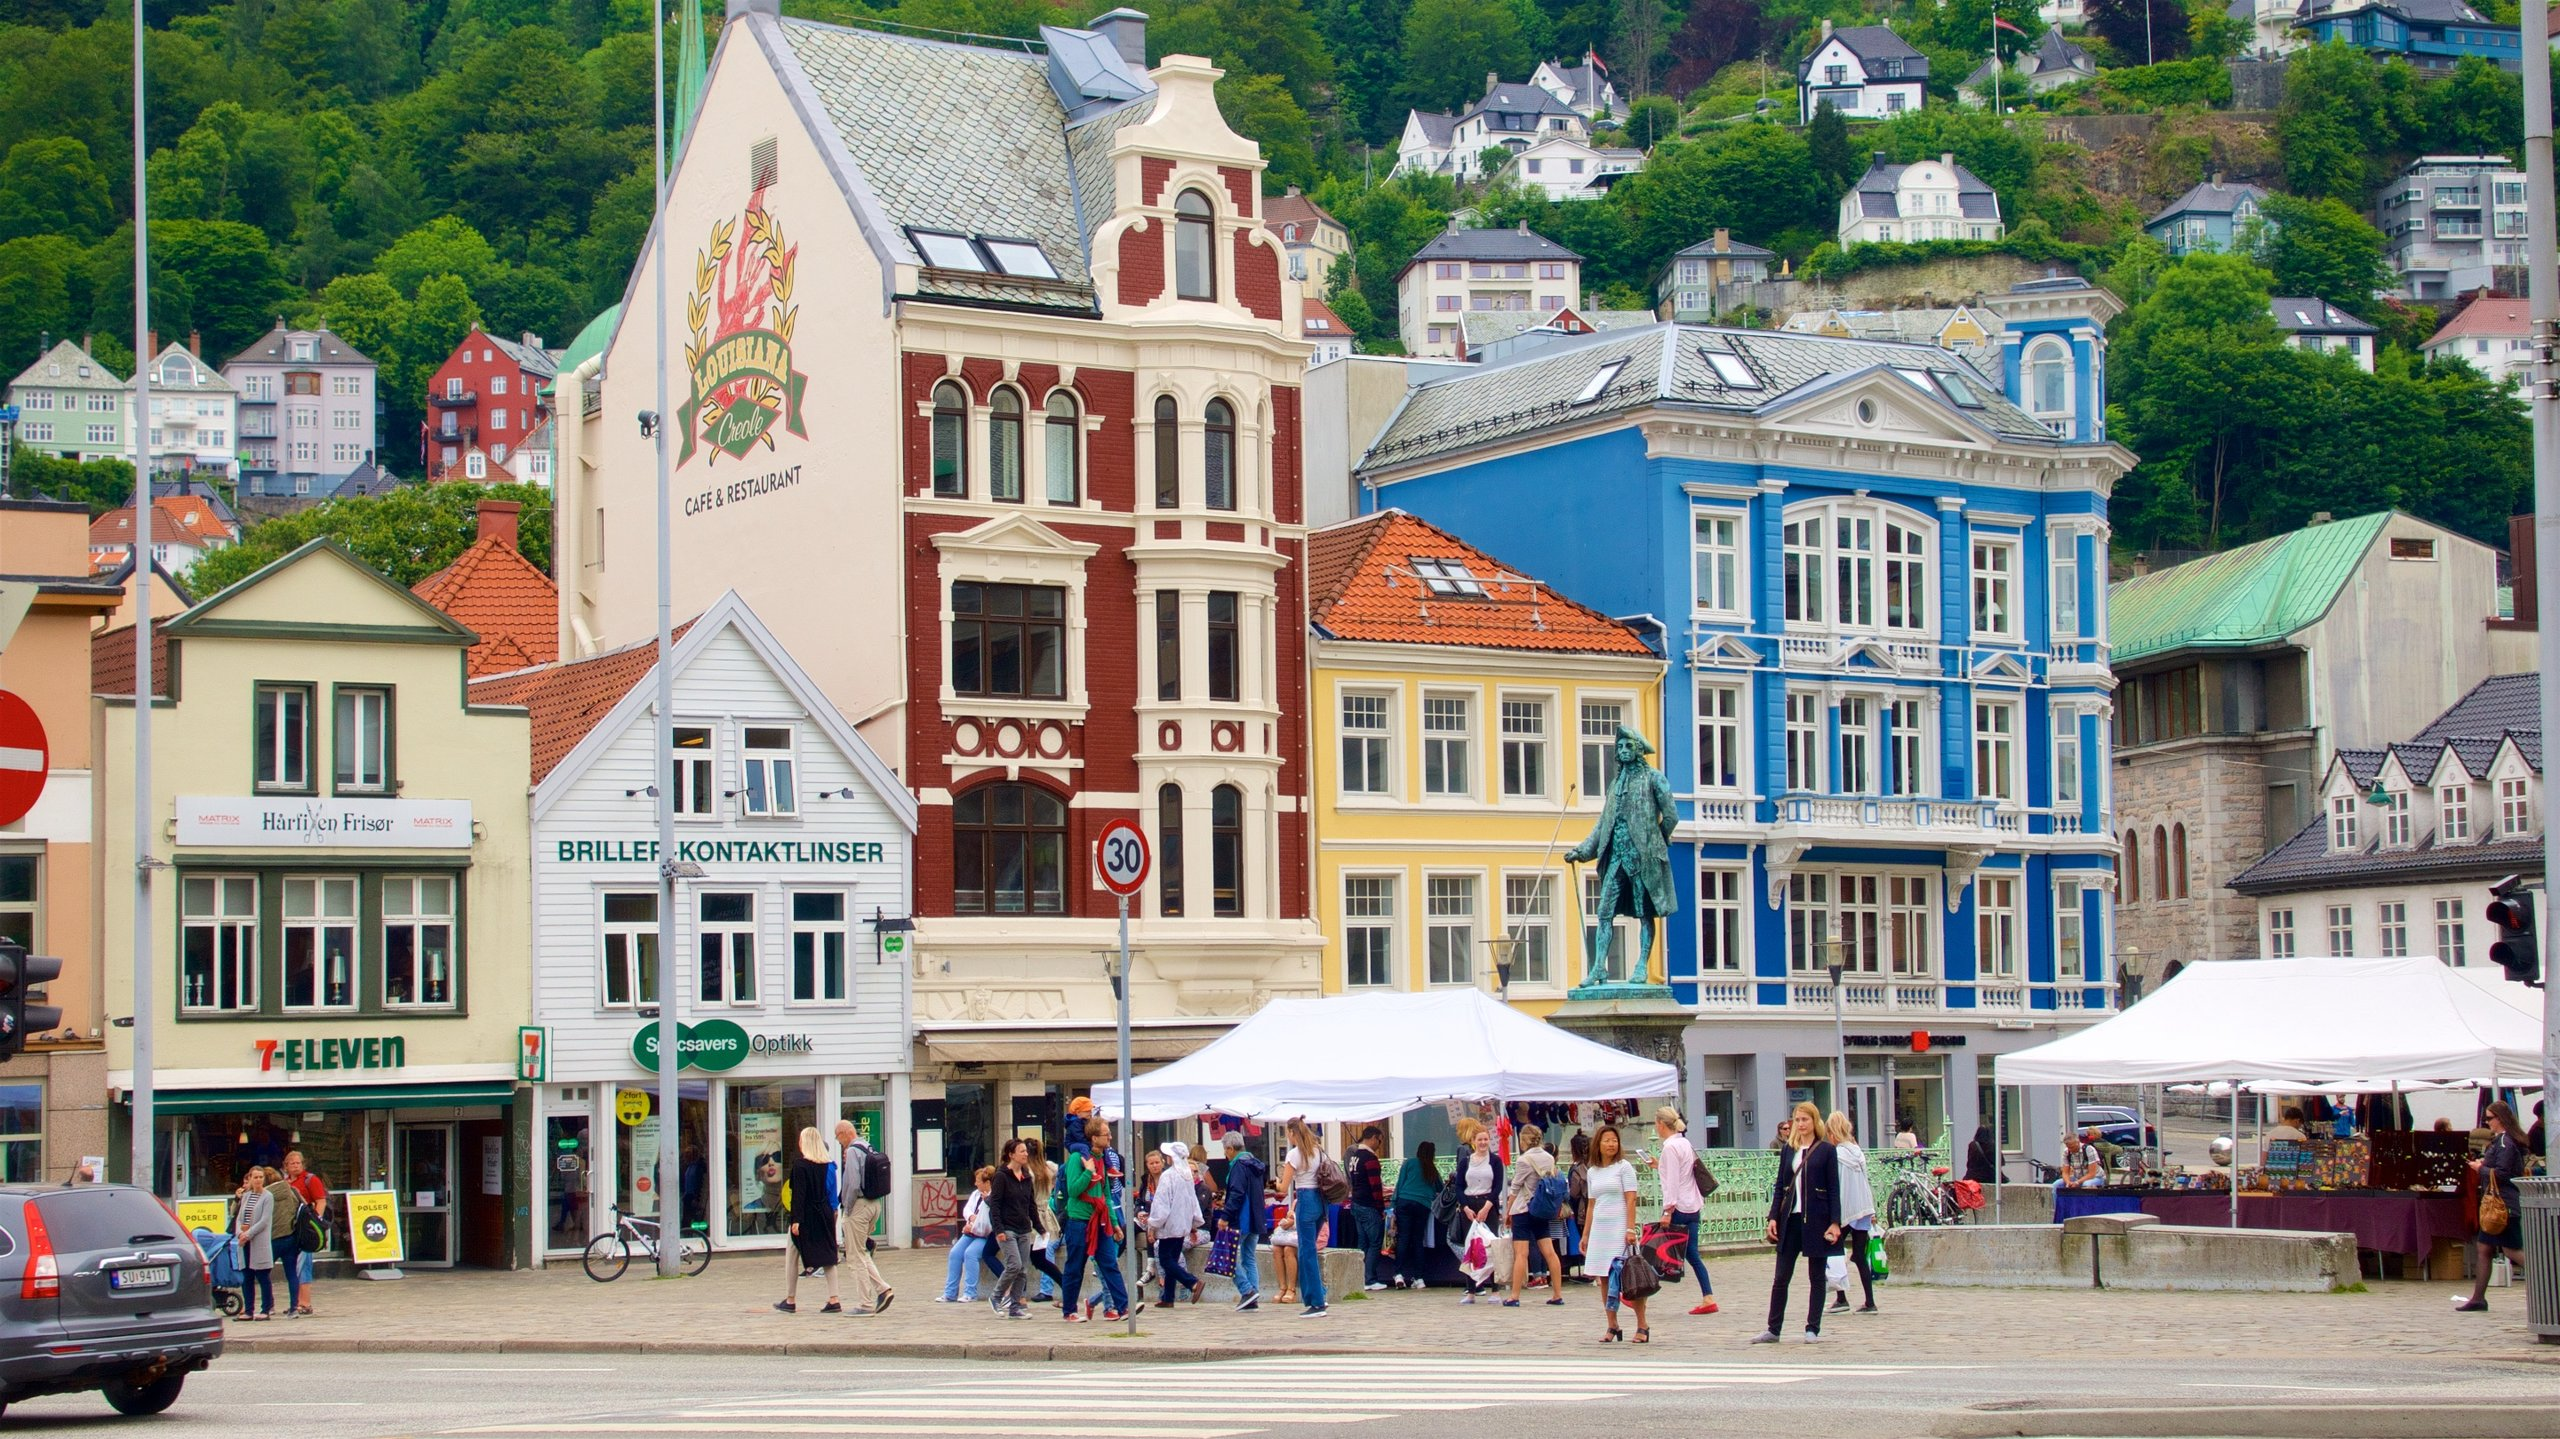 Walk around this popular spot in Bergen, a beautiful neighborhood full of traditional houses, museums, restaurants and shops along an arm of the North Sea.